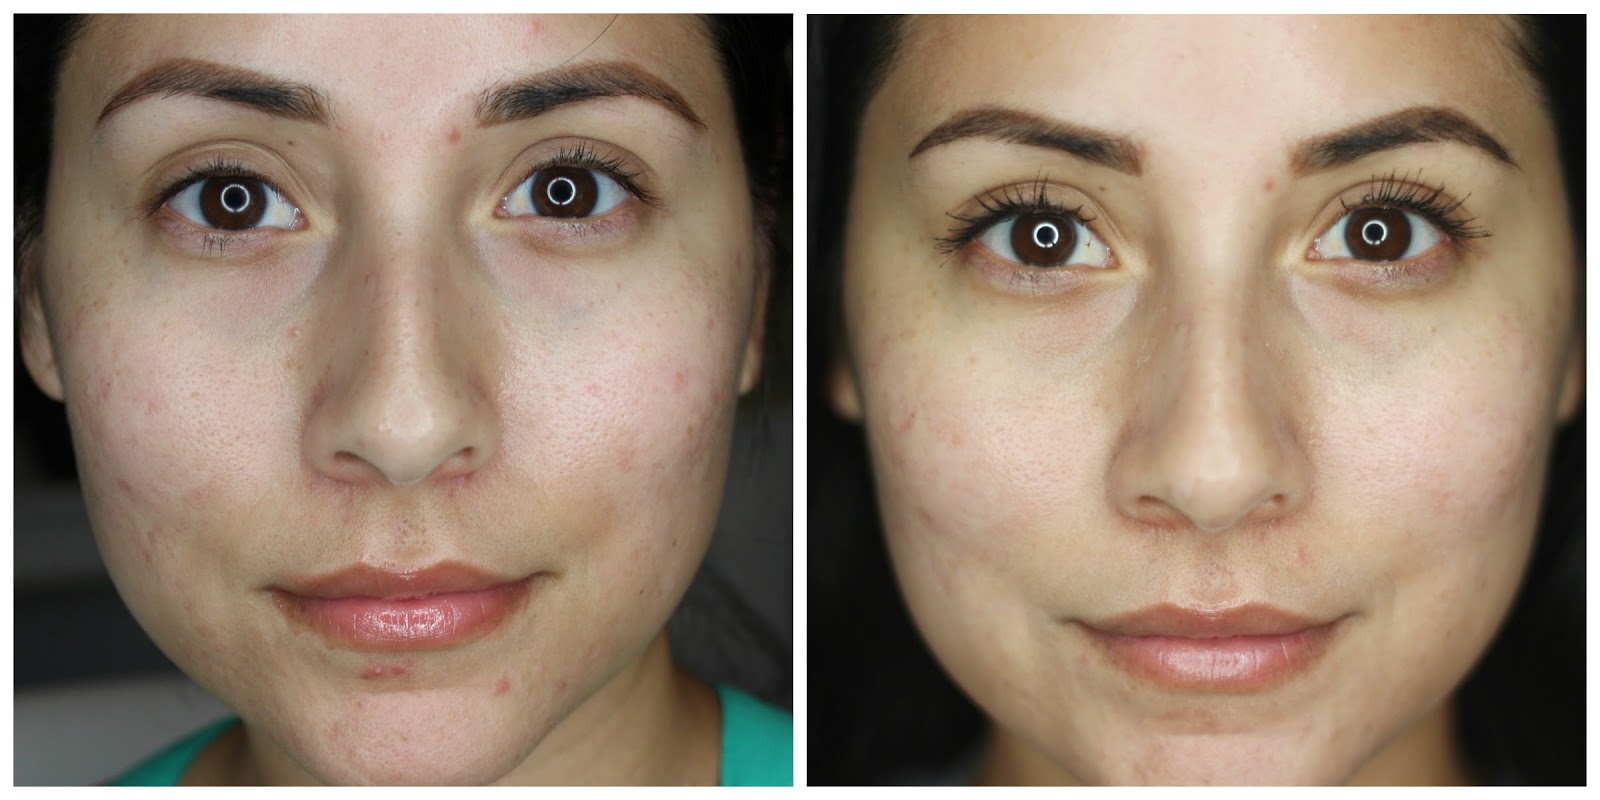 before and after pictures showing the decrease in skin breakouts